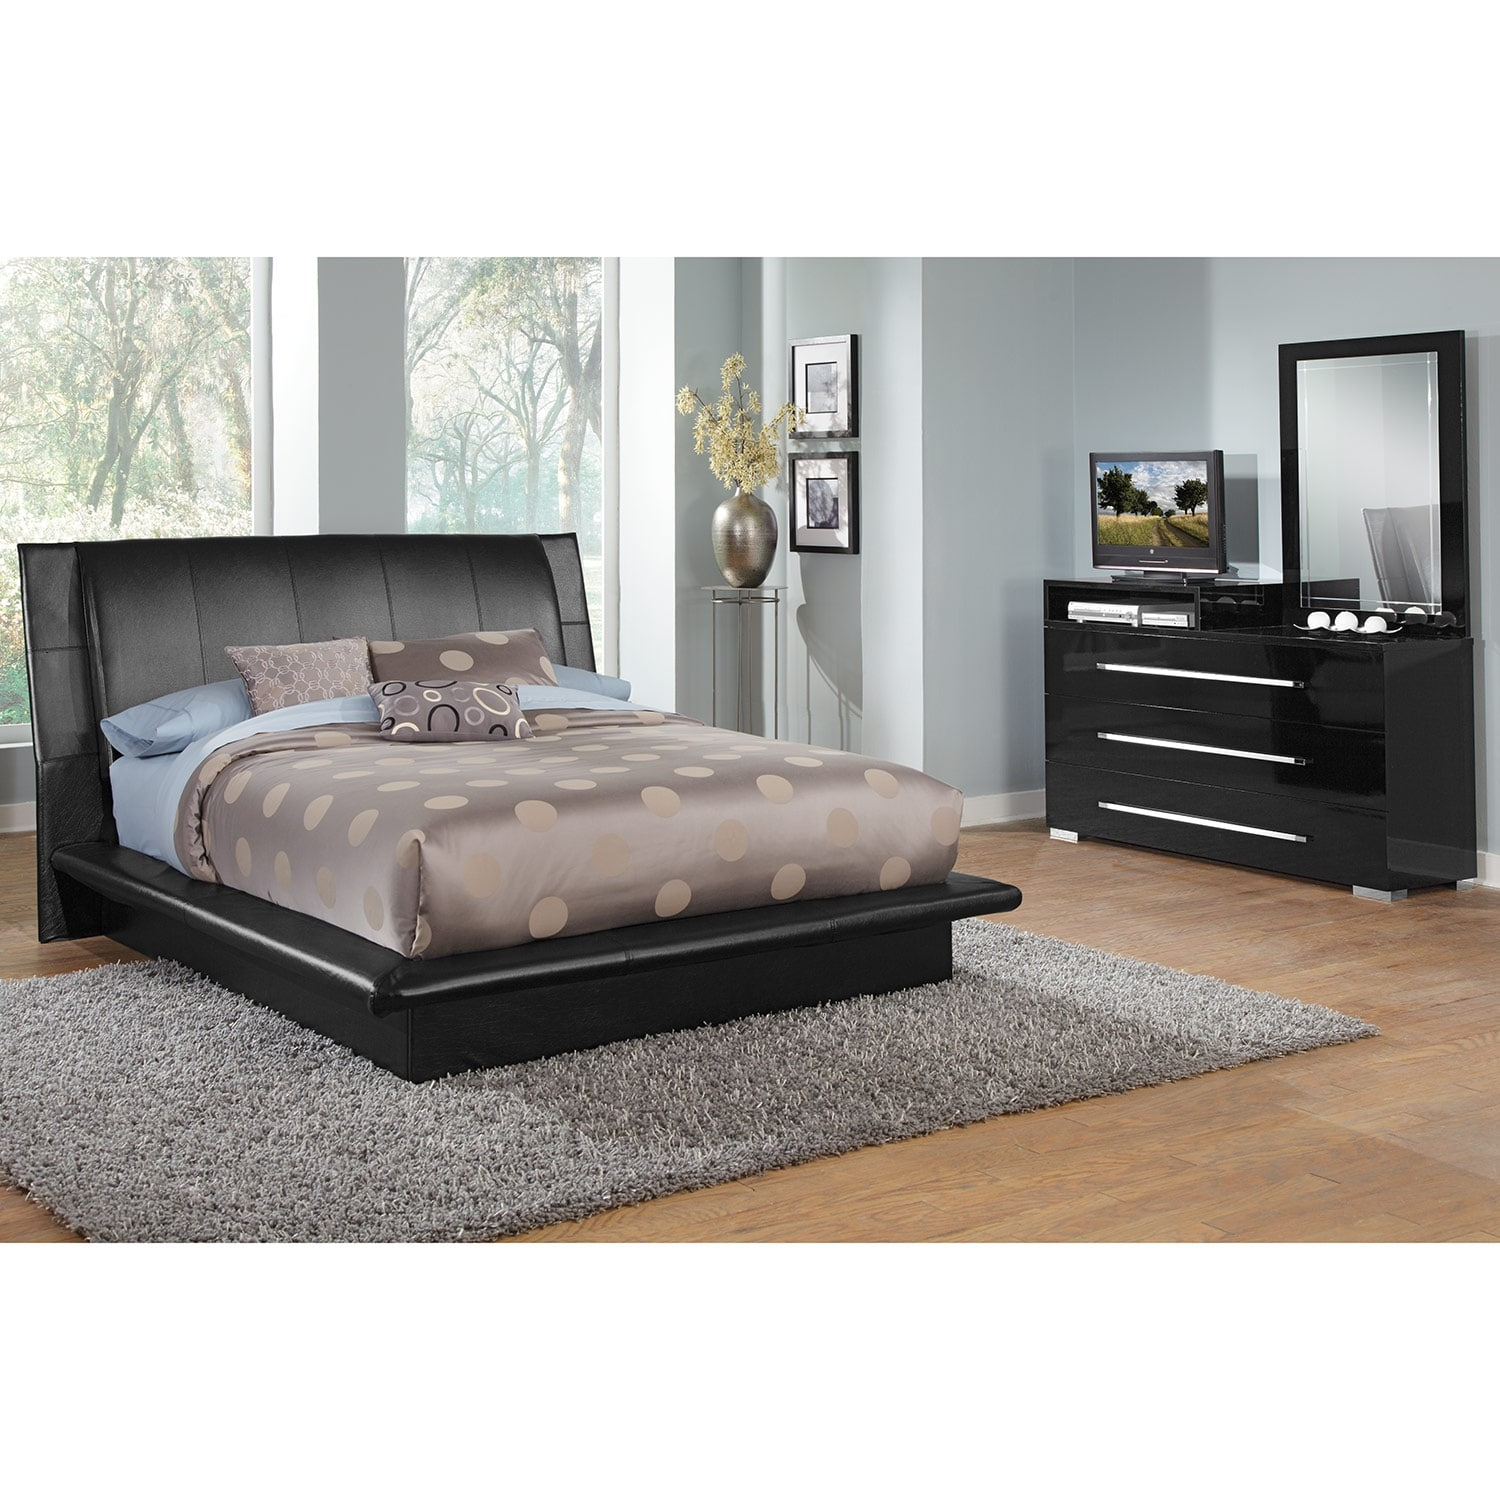 Dimora black 5 pc queen bedroom value city furniture for Furniture queen bedroom sets